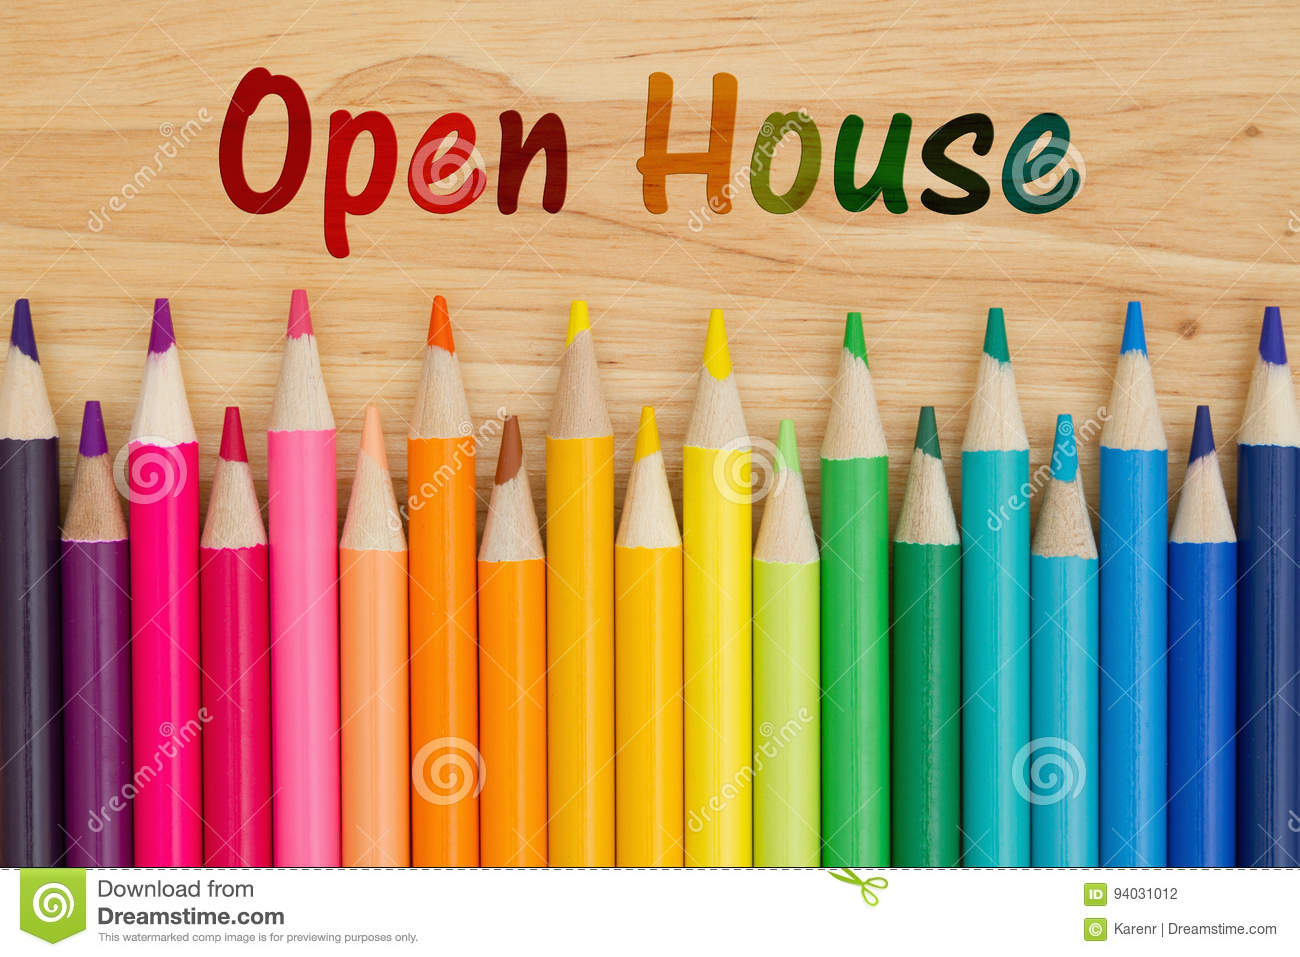 Open House message